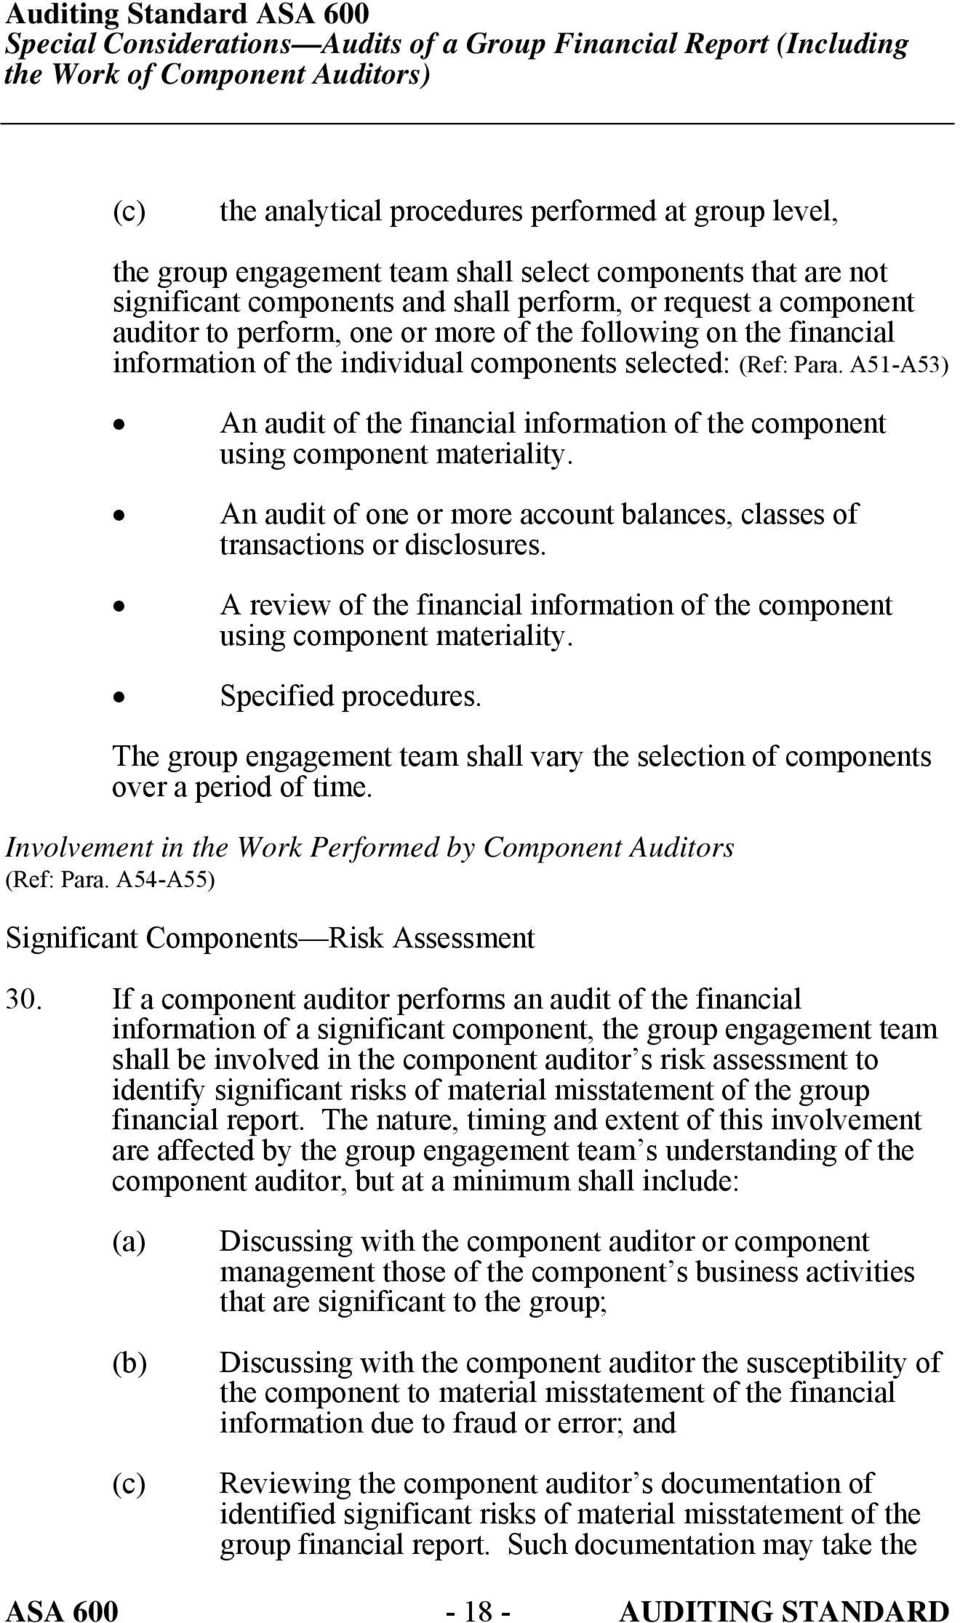 A51-A53) An audit of the financial information of the component using component materiality. An audit of one or more account balances, classes of transactions or disclosures.